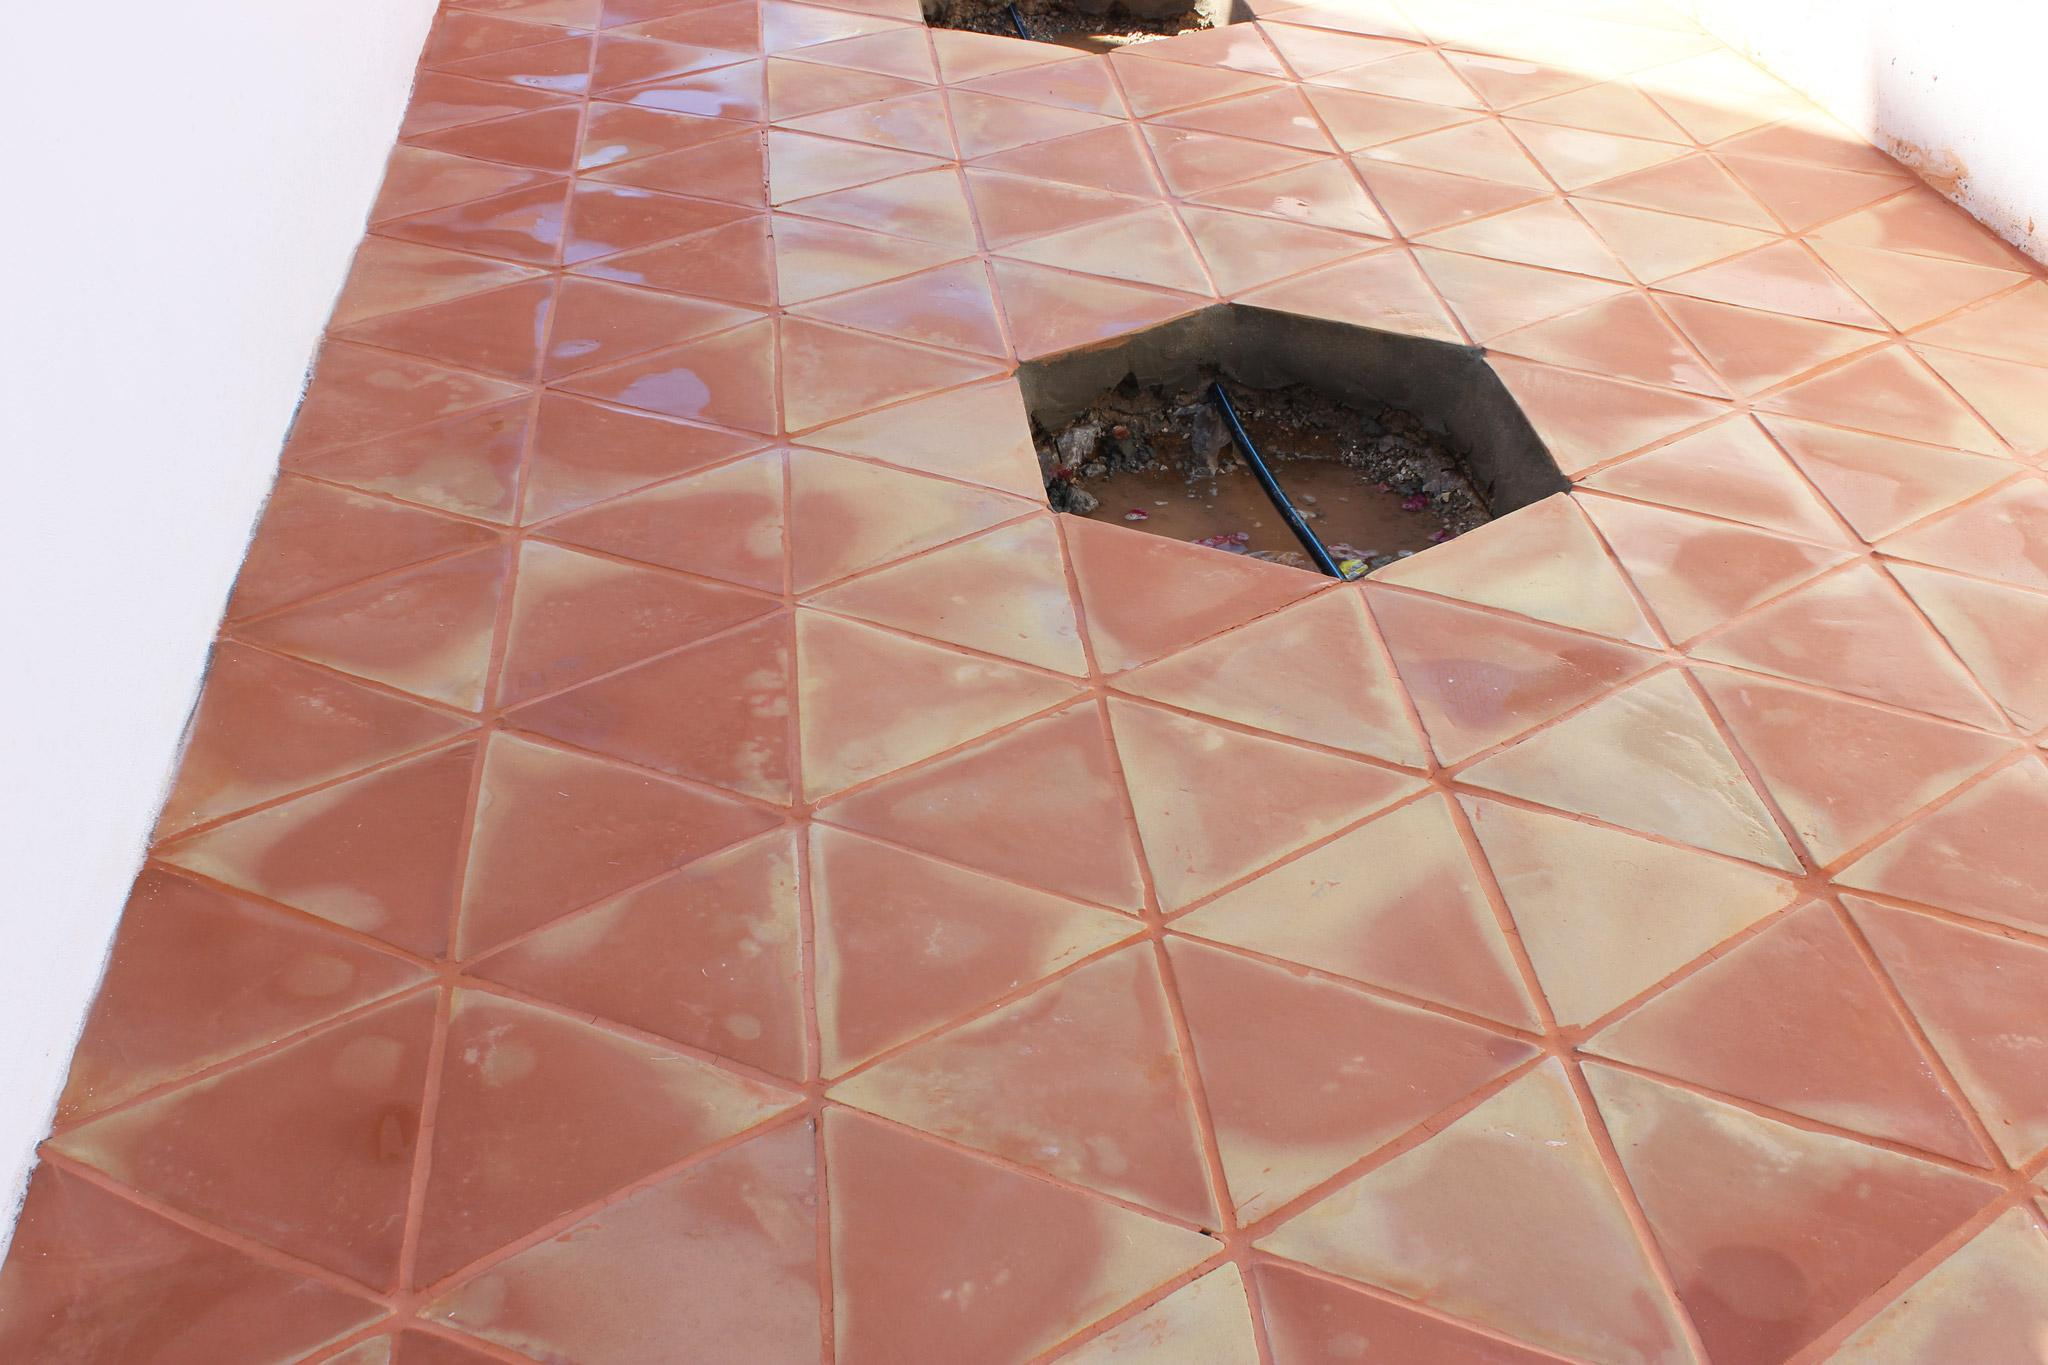 11 Pak Clay Living Room Floor Tiles Design and Price in Pakistan Images.